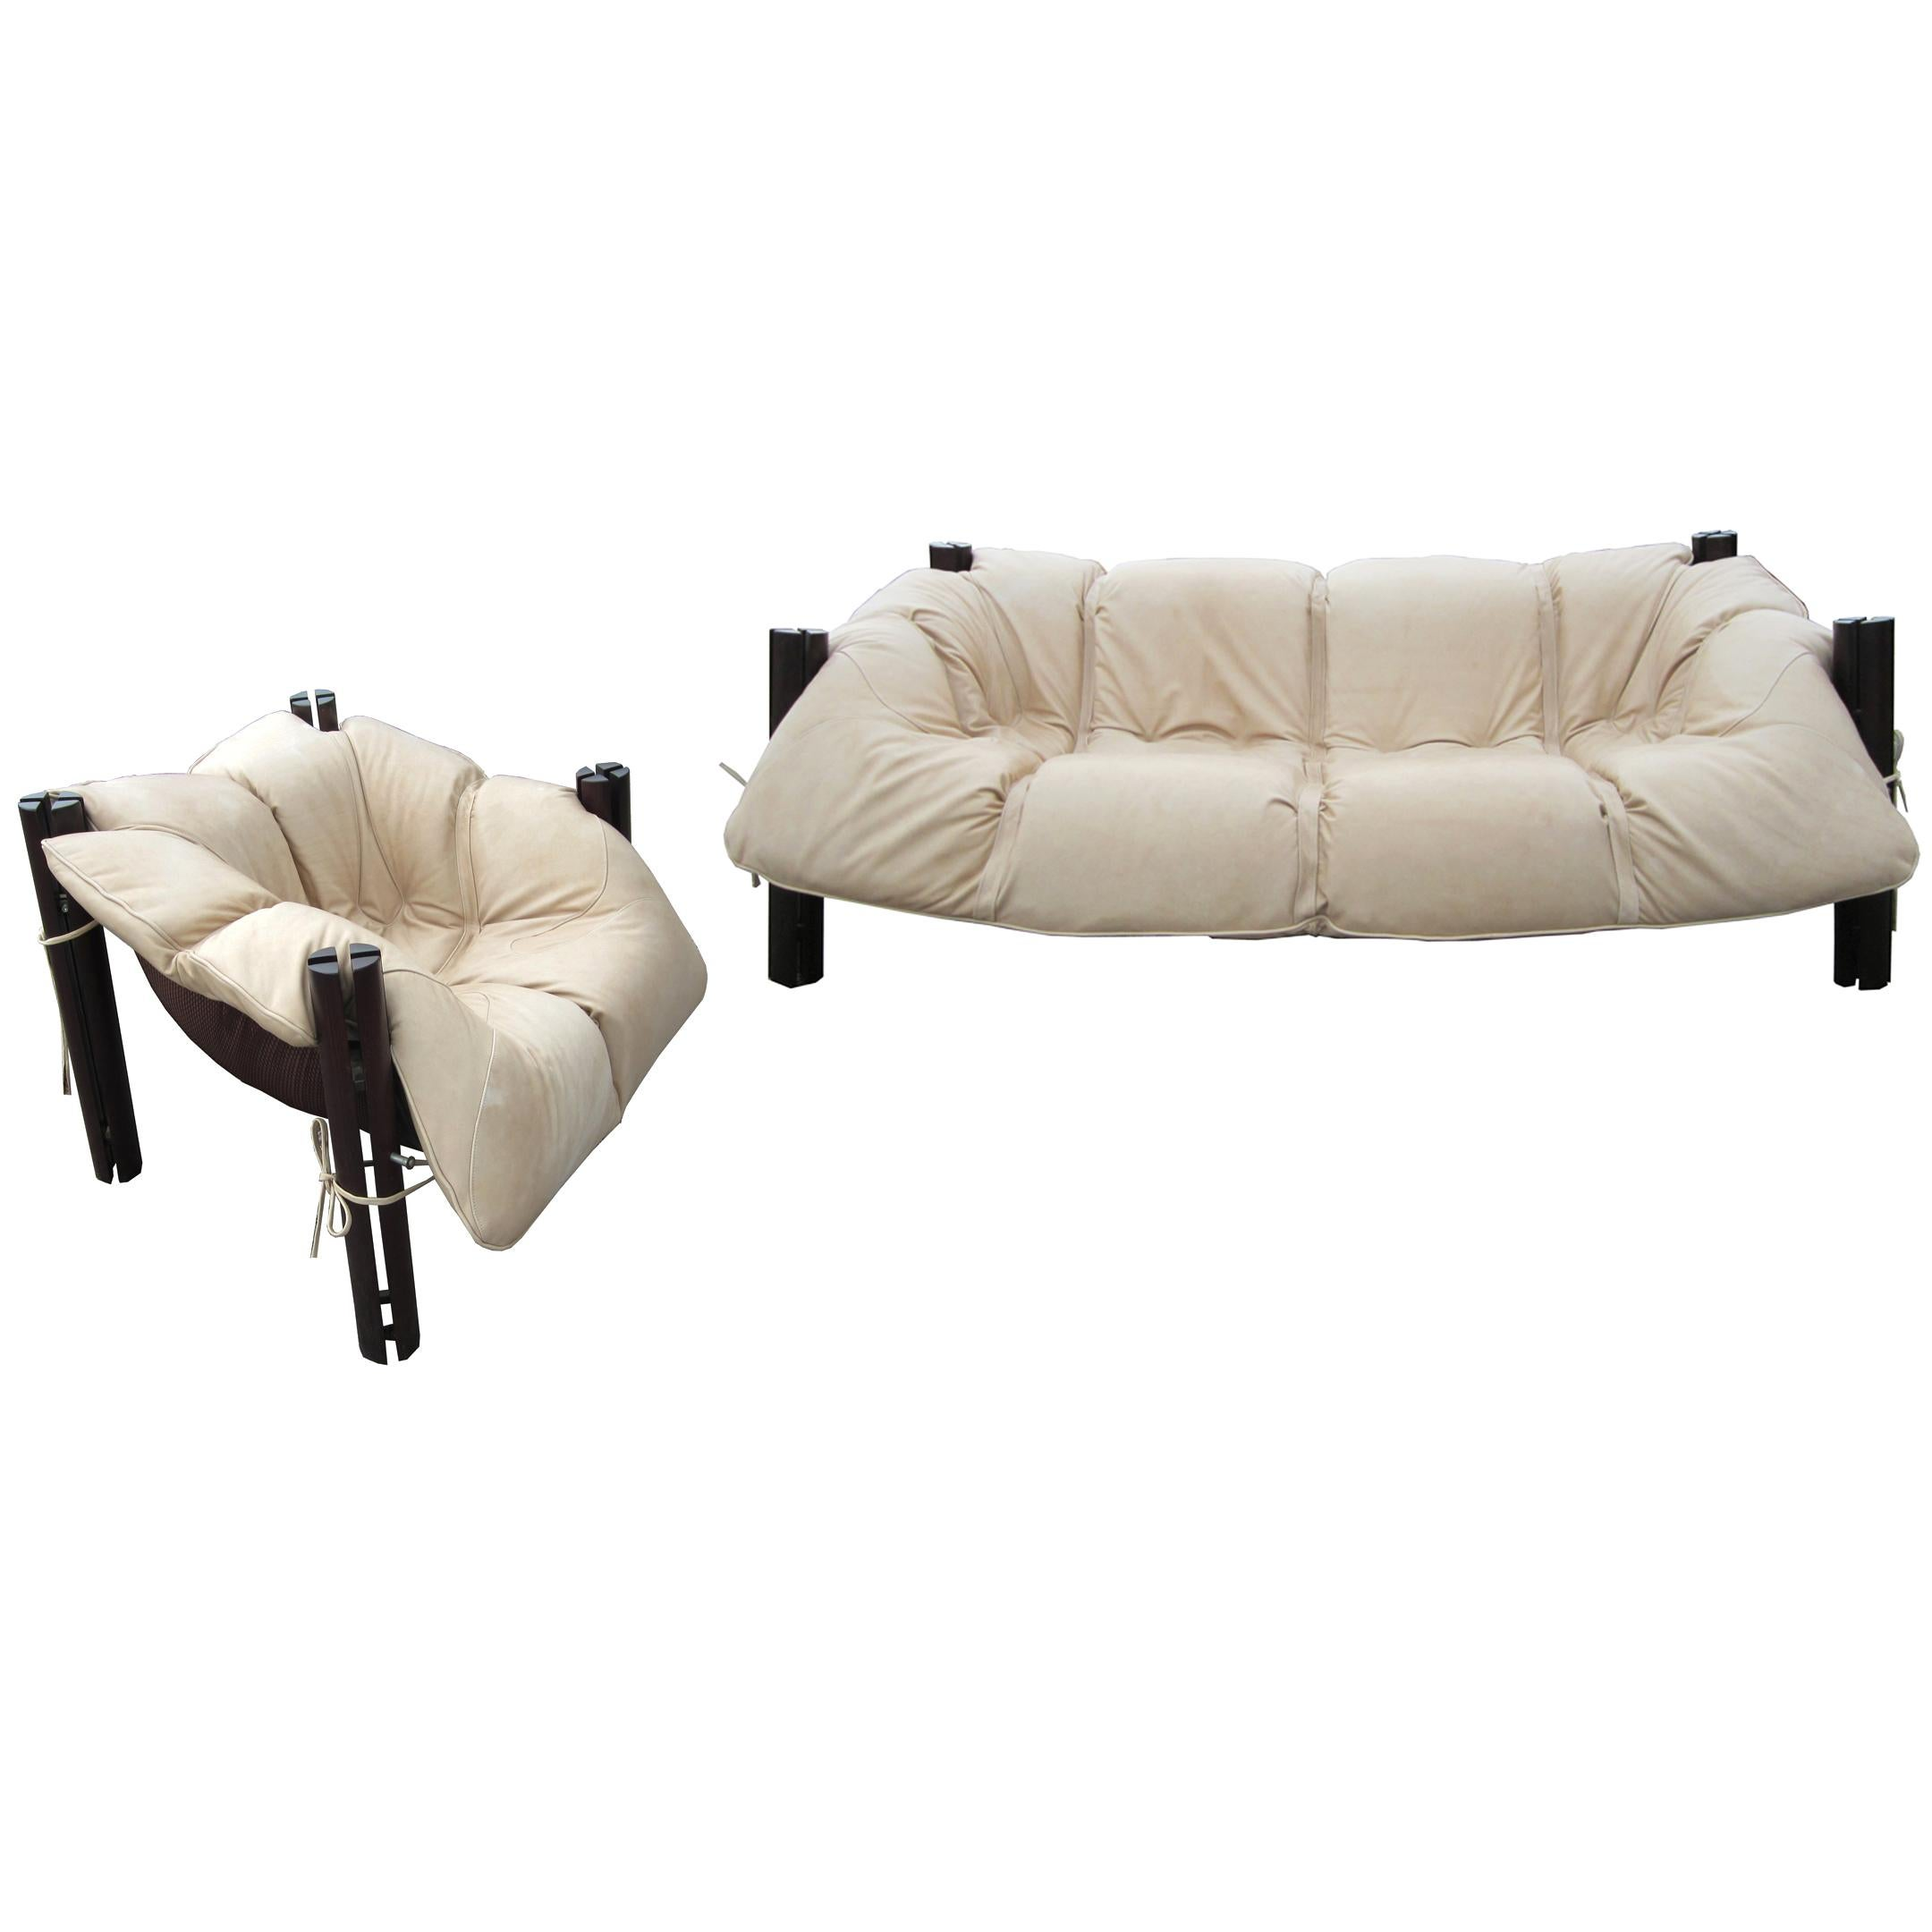 Percival Lafer Sofas   22 For Sale At 1stdibs